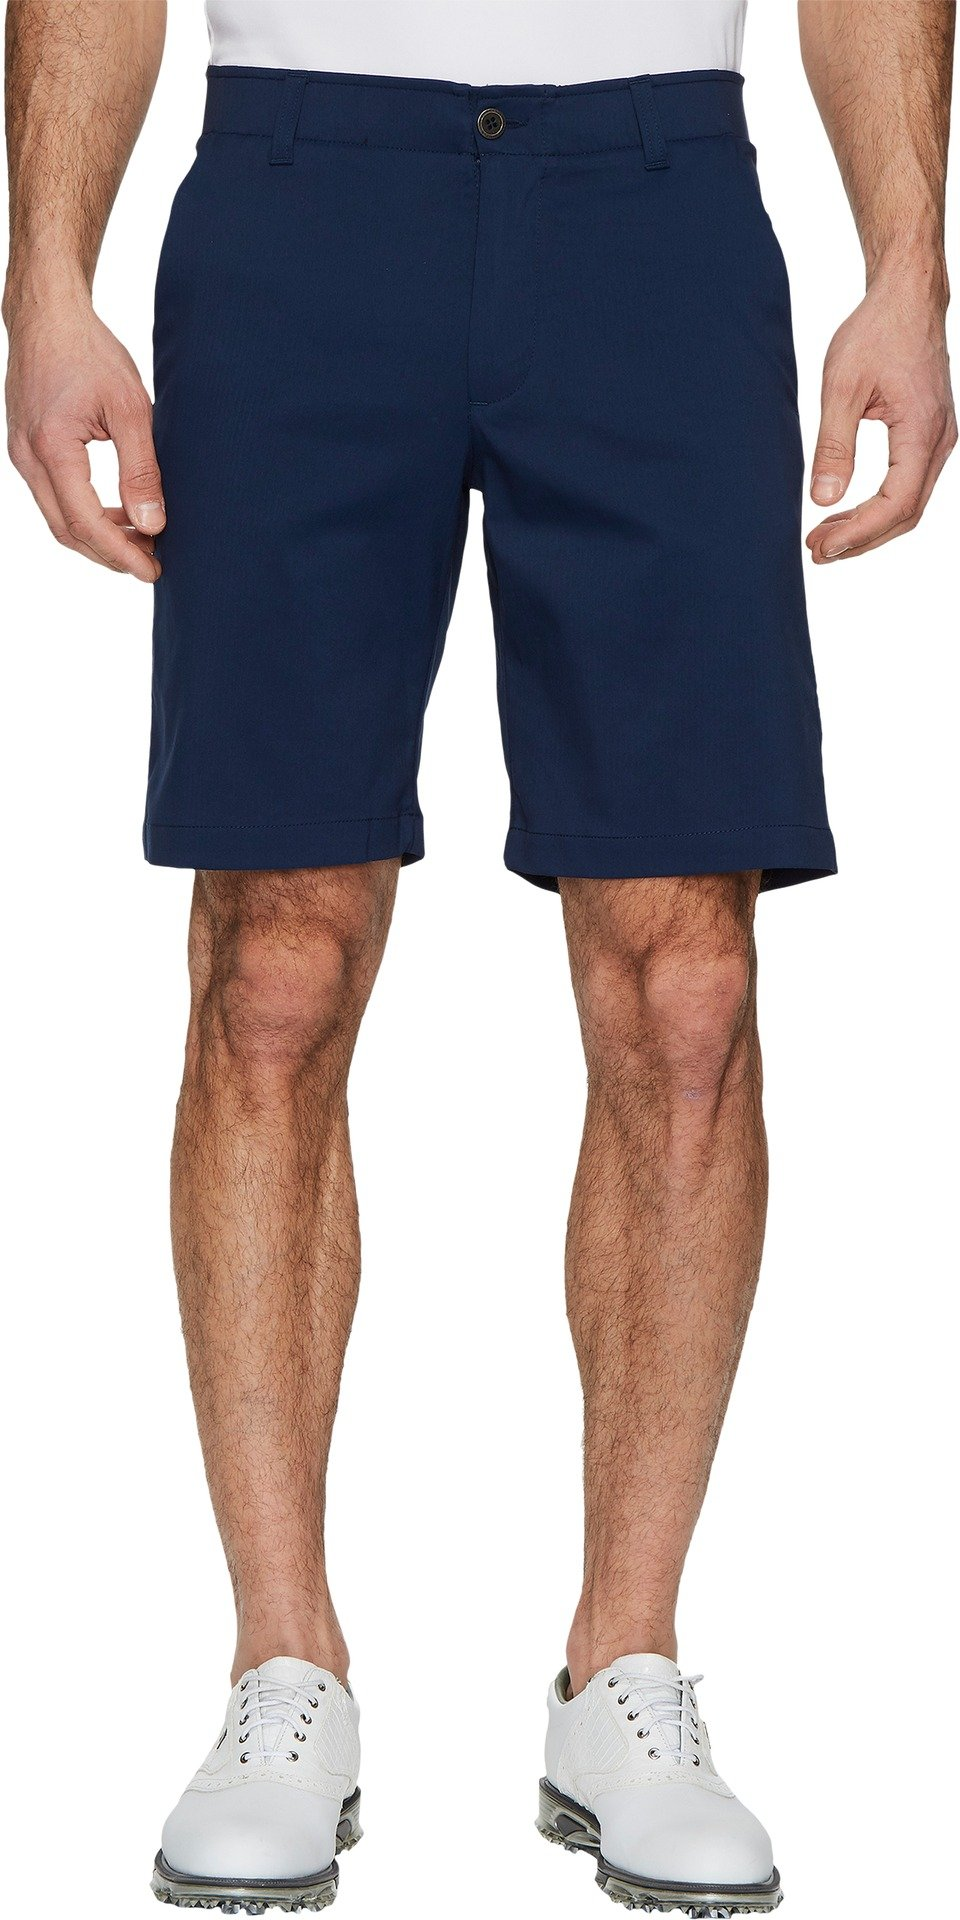 Under Armour Men's Showdown Golf Shorts, Academy (408)/Academy, 30 by Under Armour